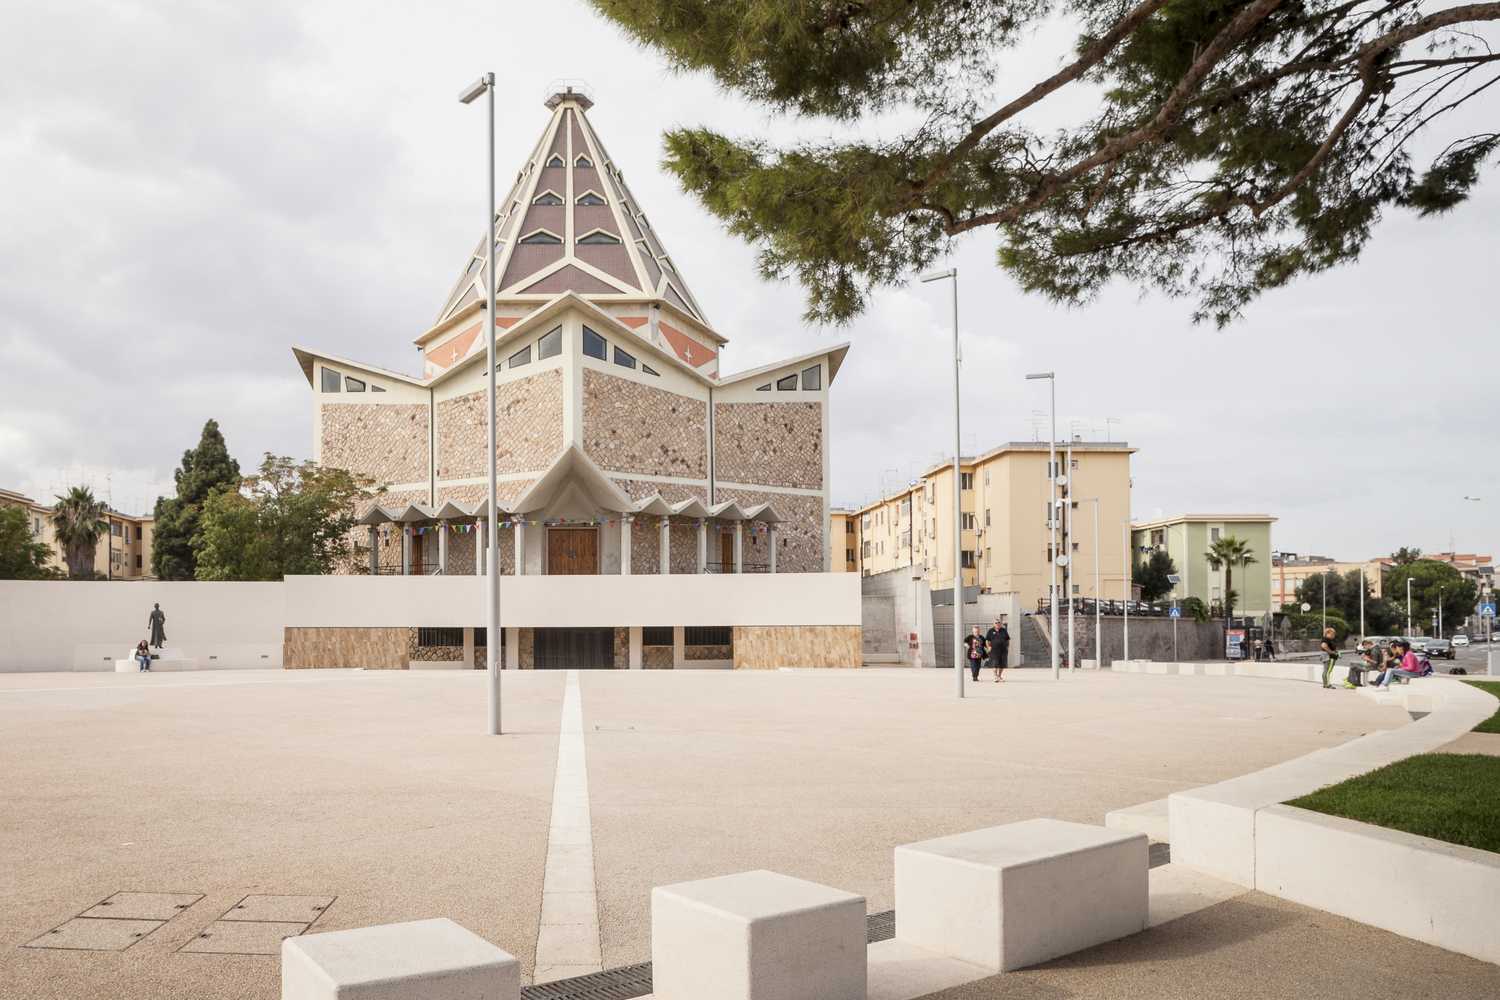 Gallery of Renovation of Piazza San Michele / VPS Architetti